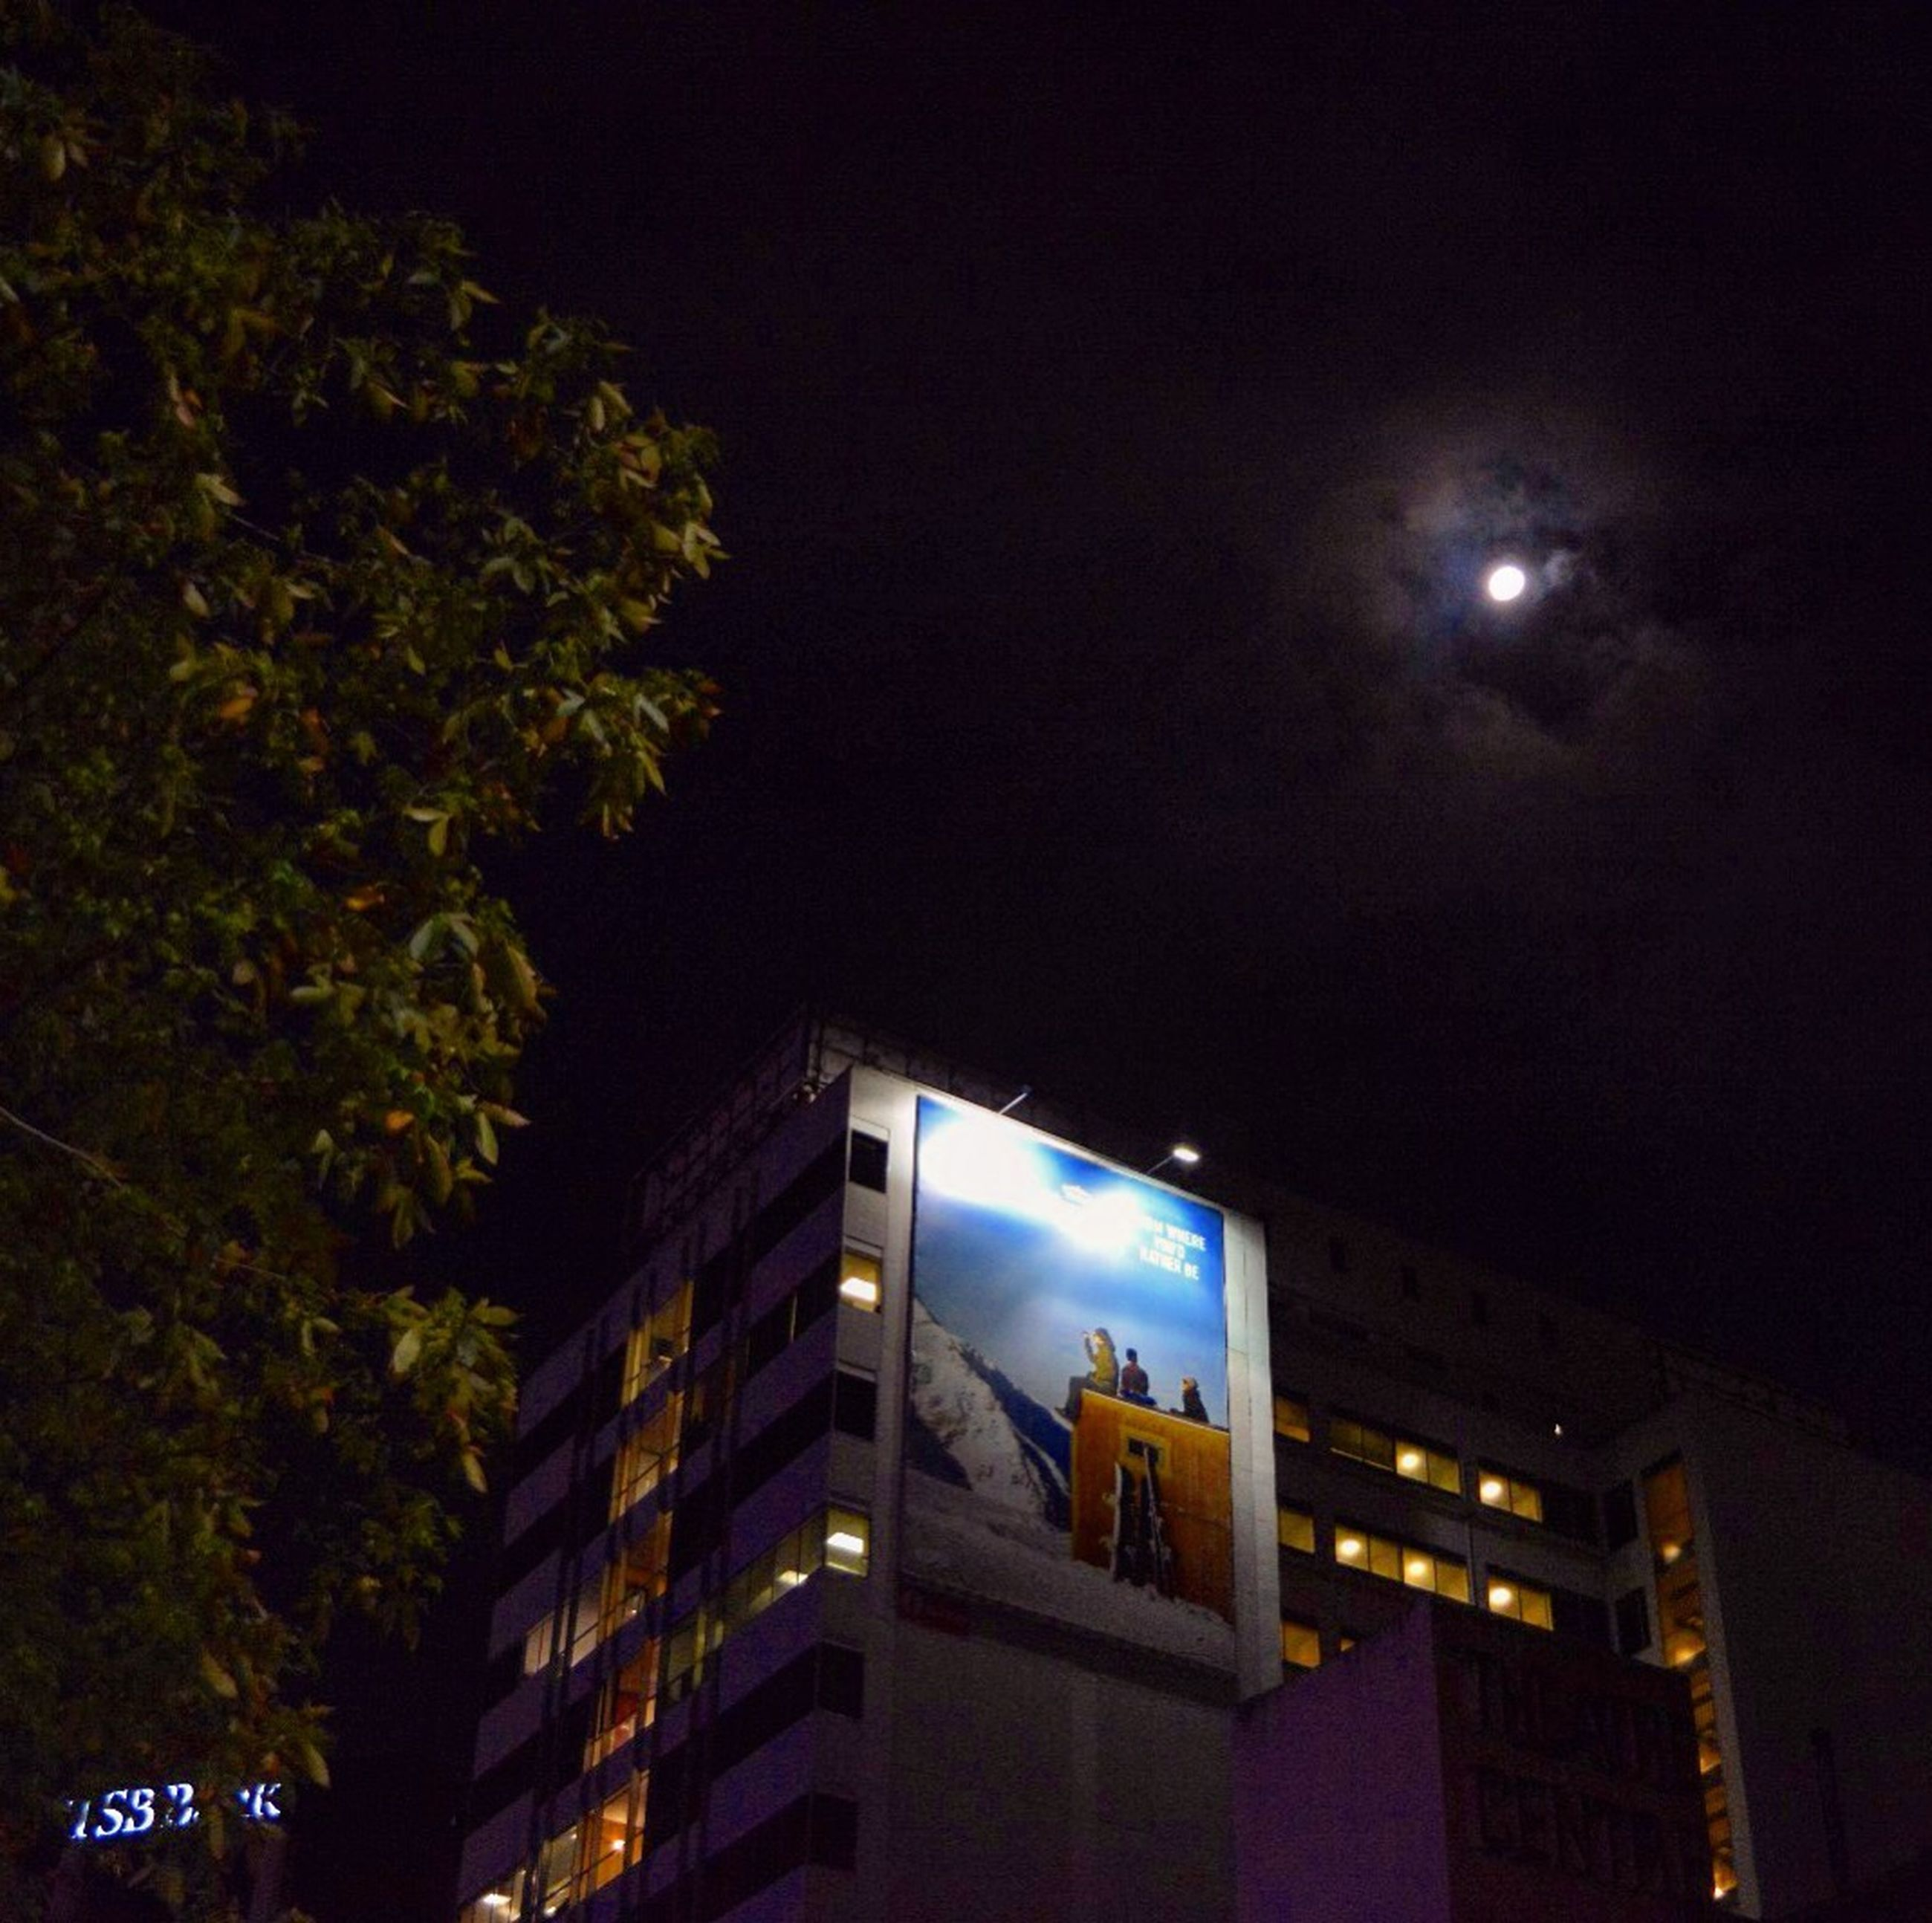 night, illuminated, building exterior, architecture, built structure, low angle view, sky, moon, city, street light, building, lighting equipment, residential building, tree, light - natural phenomenon, outdoors, residential structure, clear sky, no people, dark